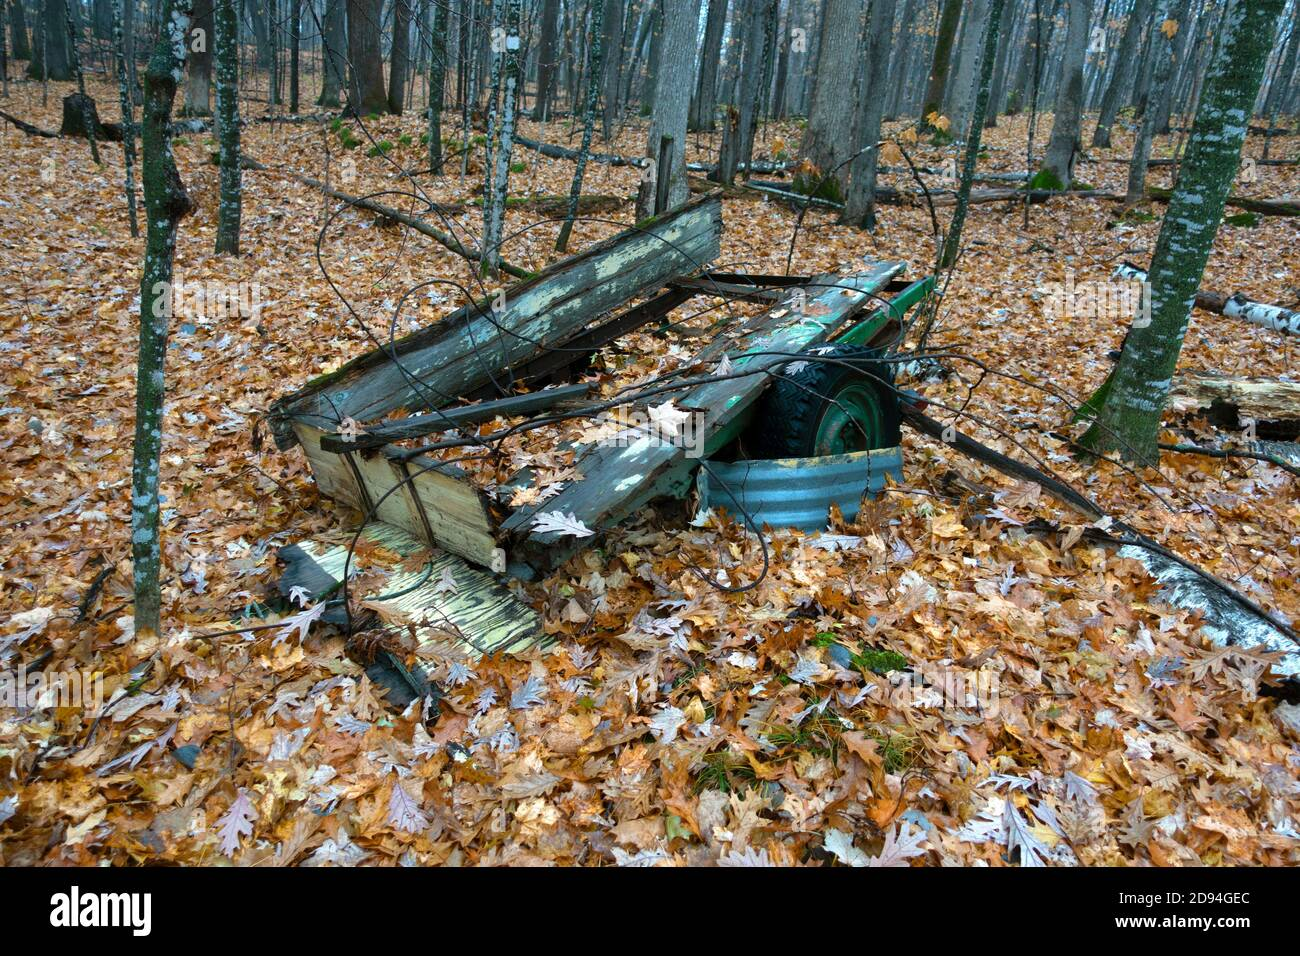 Collapsed trailer sitting in the woods. Cumberland Wisconsin WI USA Stock Photo